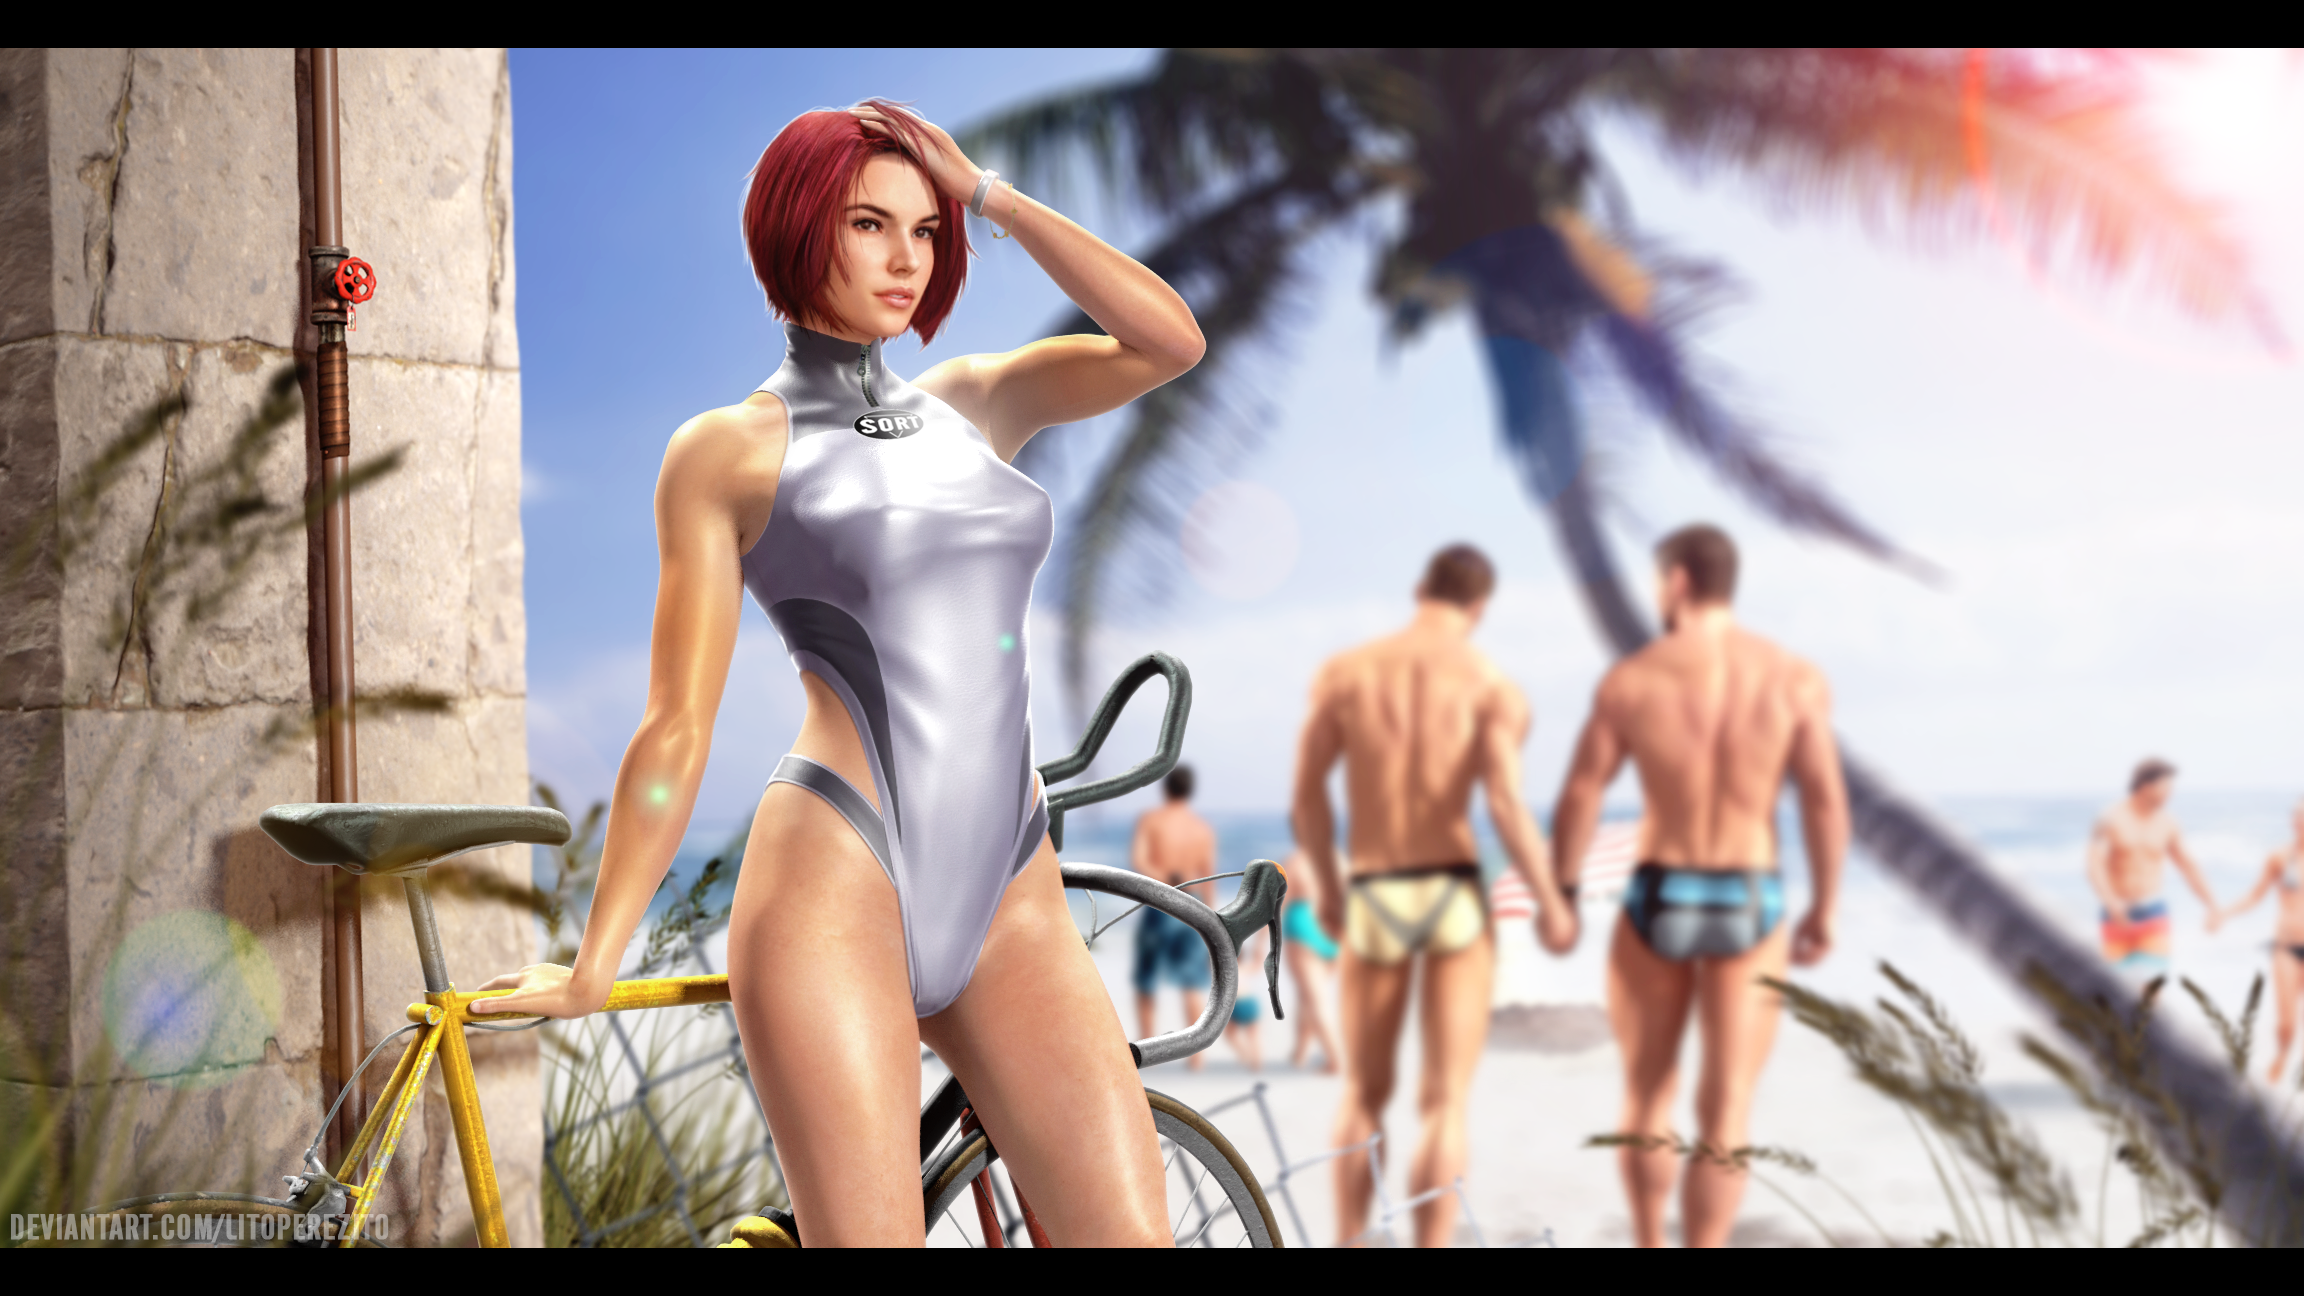 Regina S Waiting On The Beach By Litoperezito On Deviantart